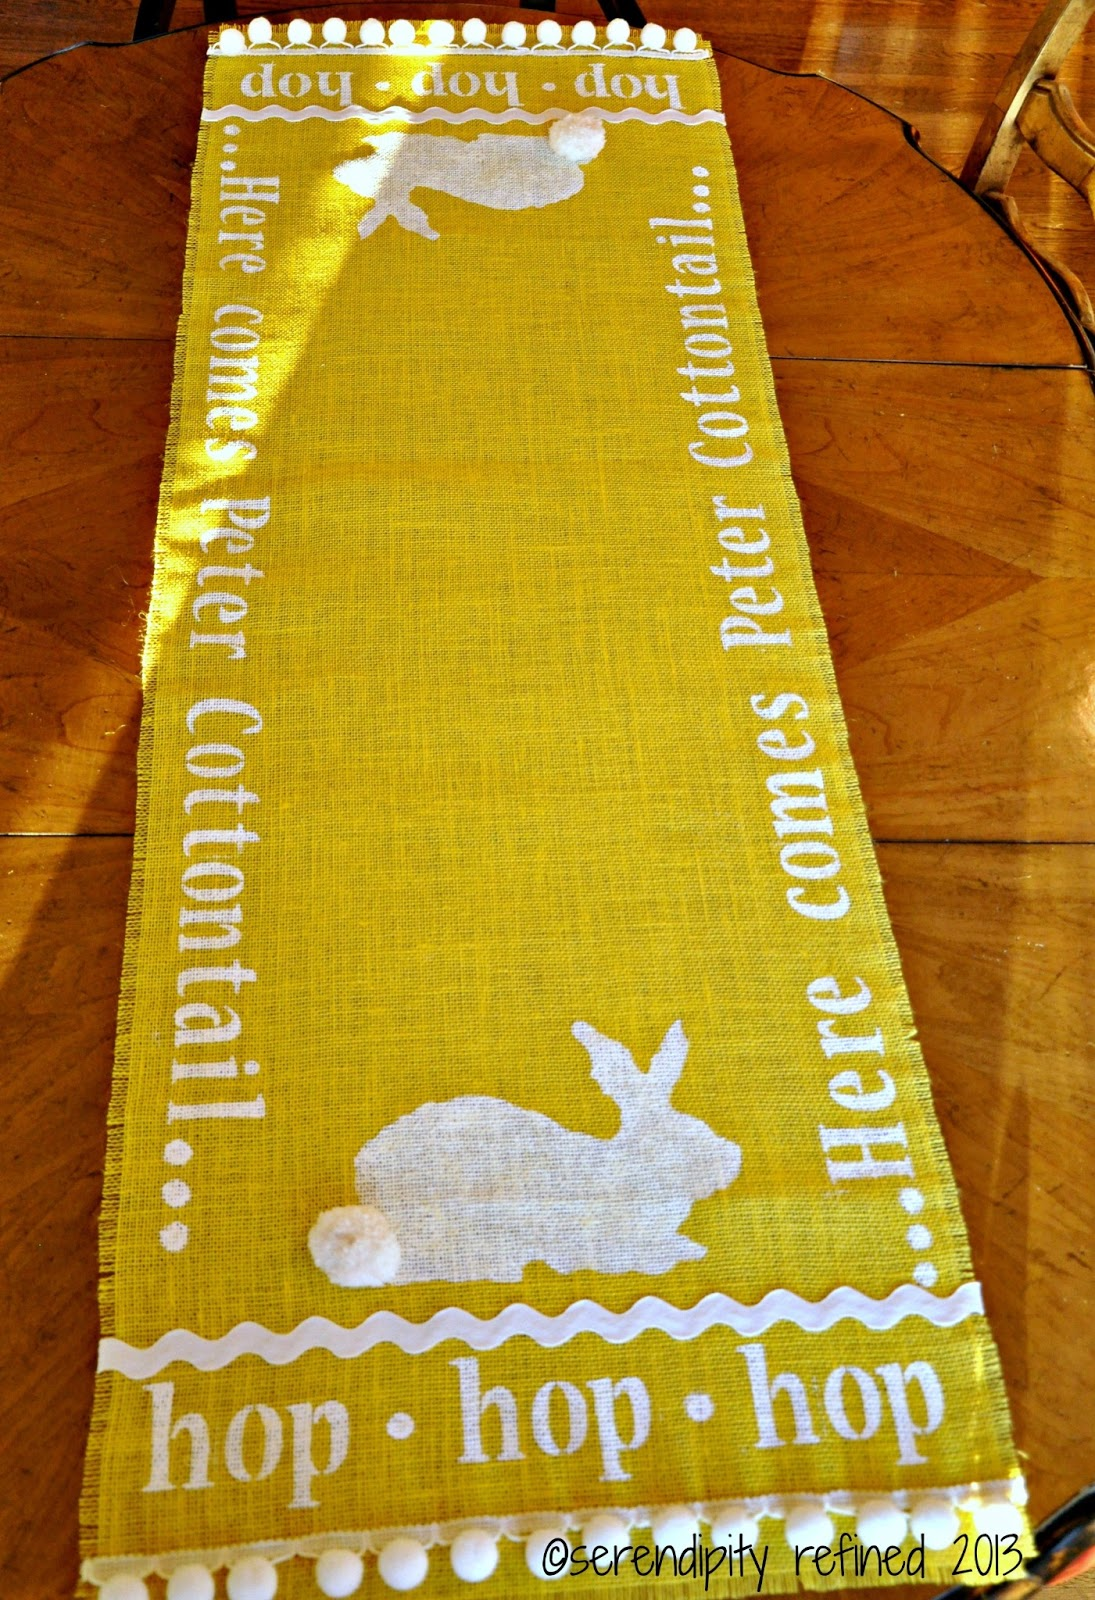 stenciled, kitchen runner table bunny, and runner table on burlap, my  table yellow yellow